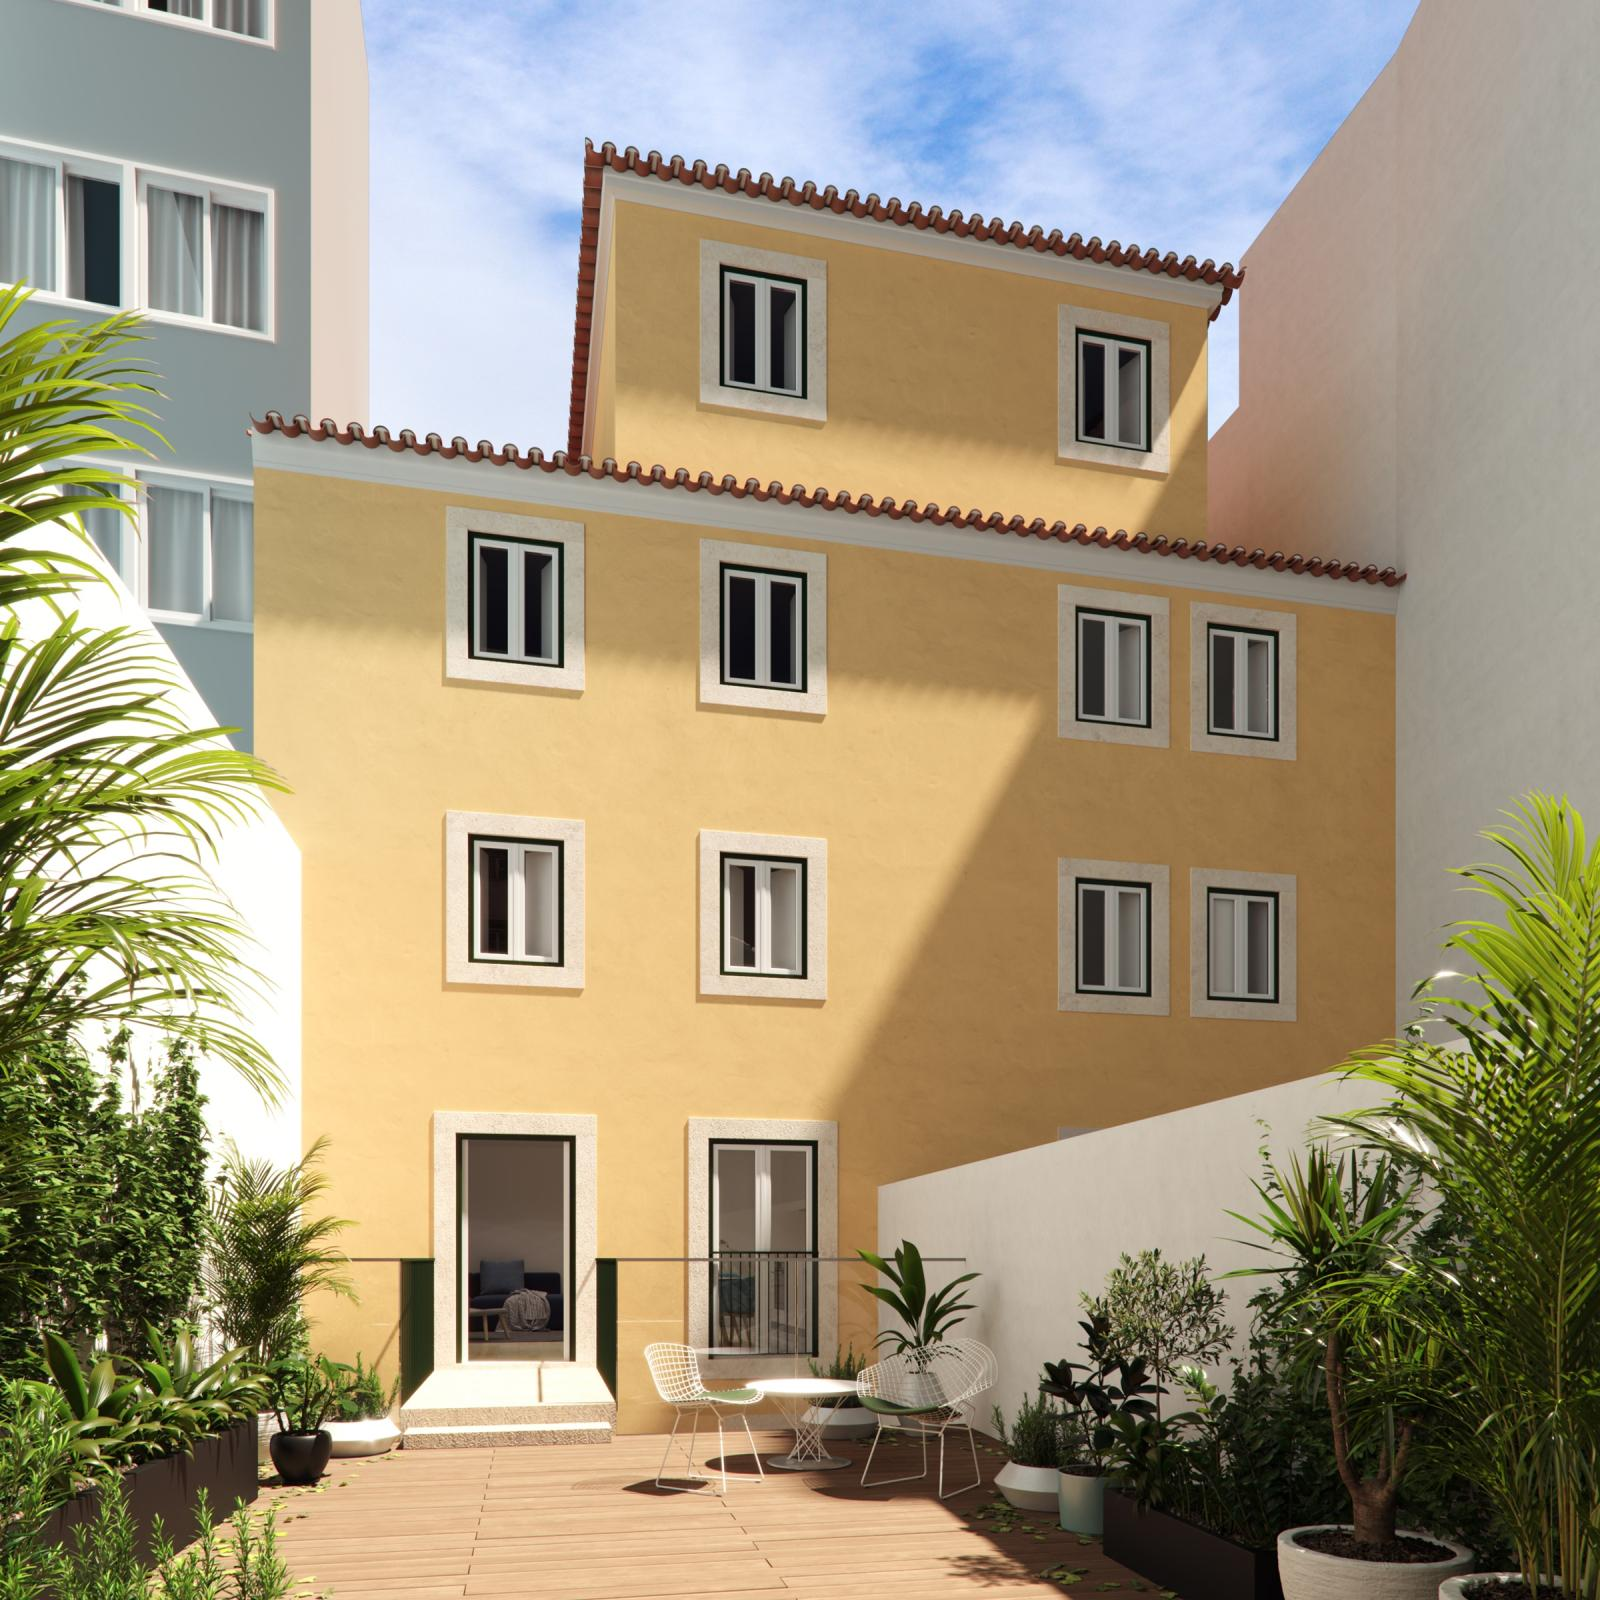 external view cozy building portugal real estate